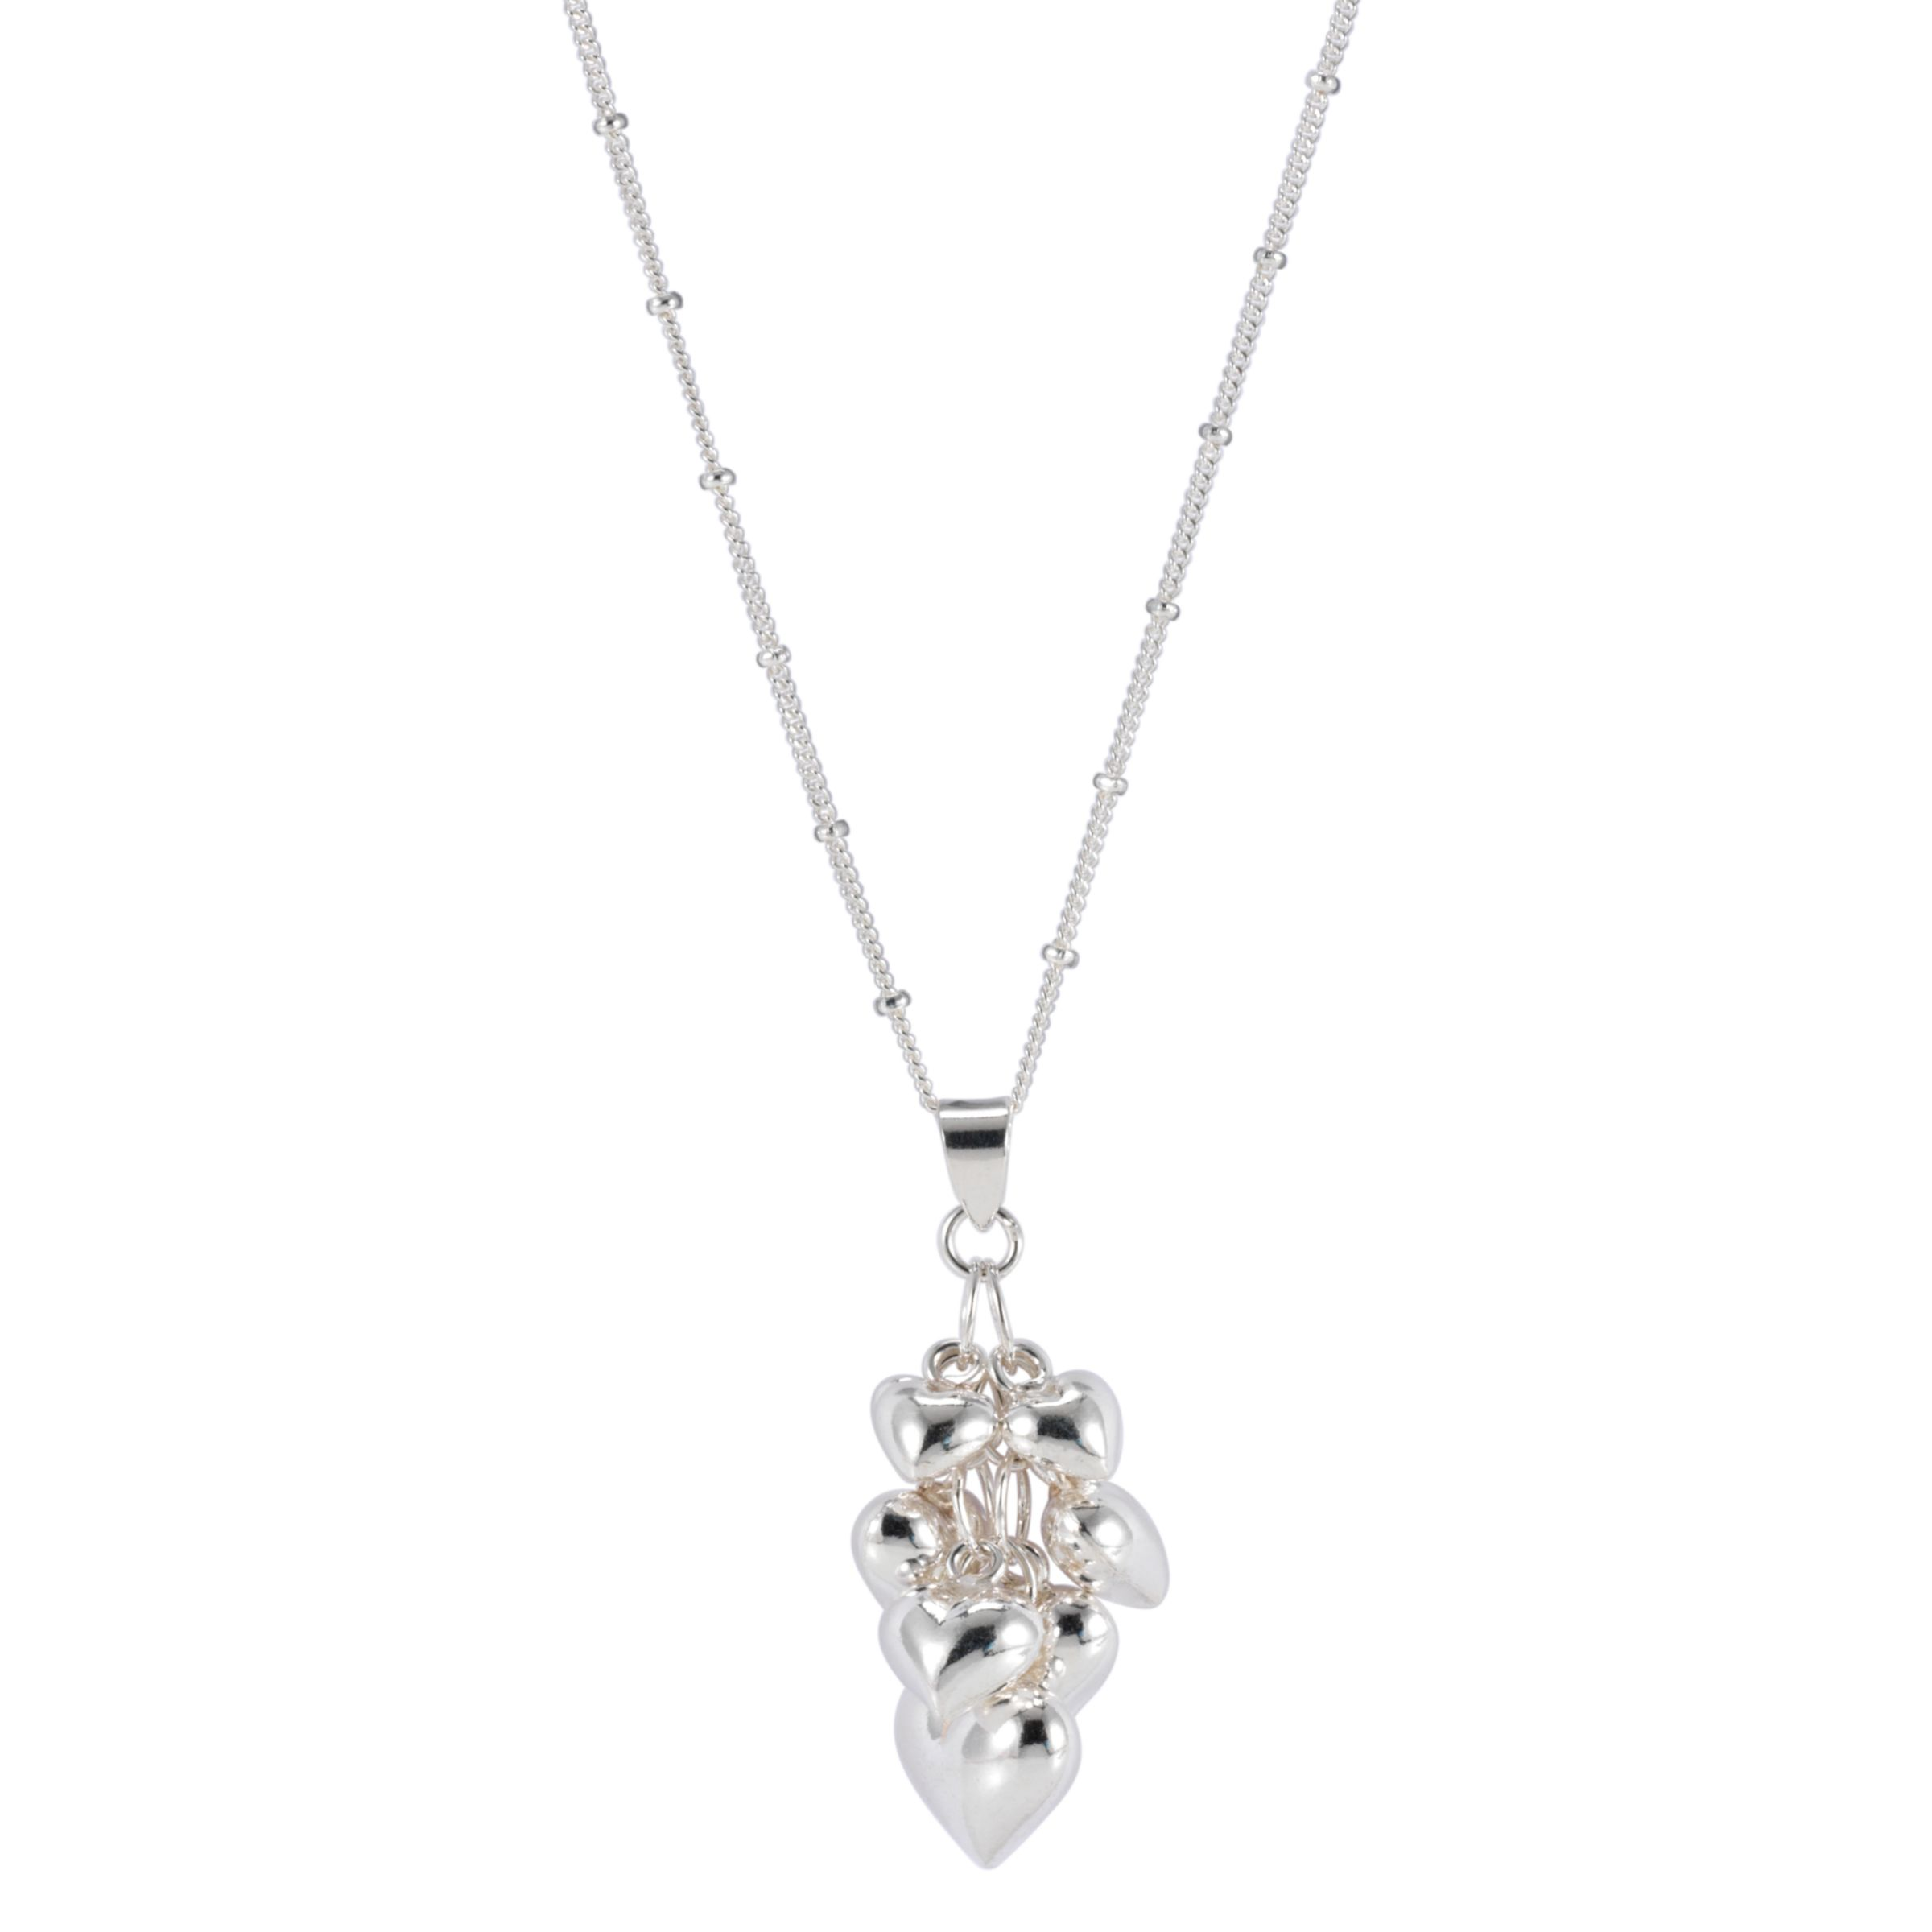 Martick Multi-Heart Pendant Necklace